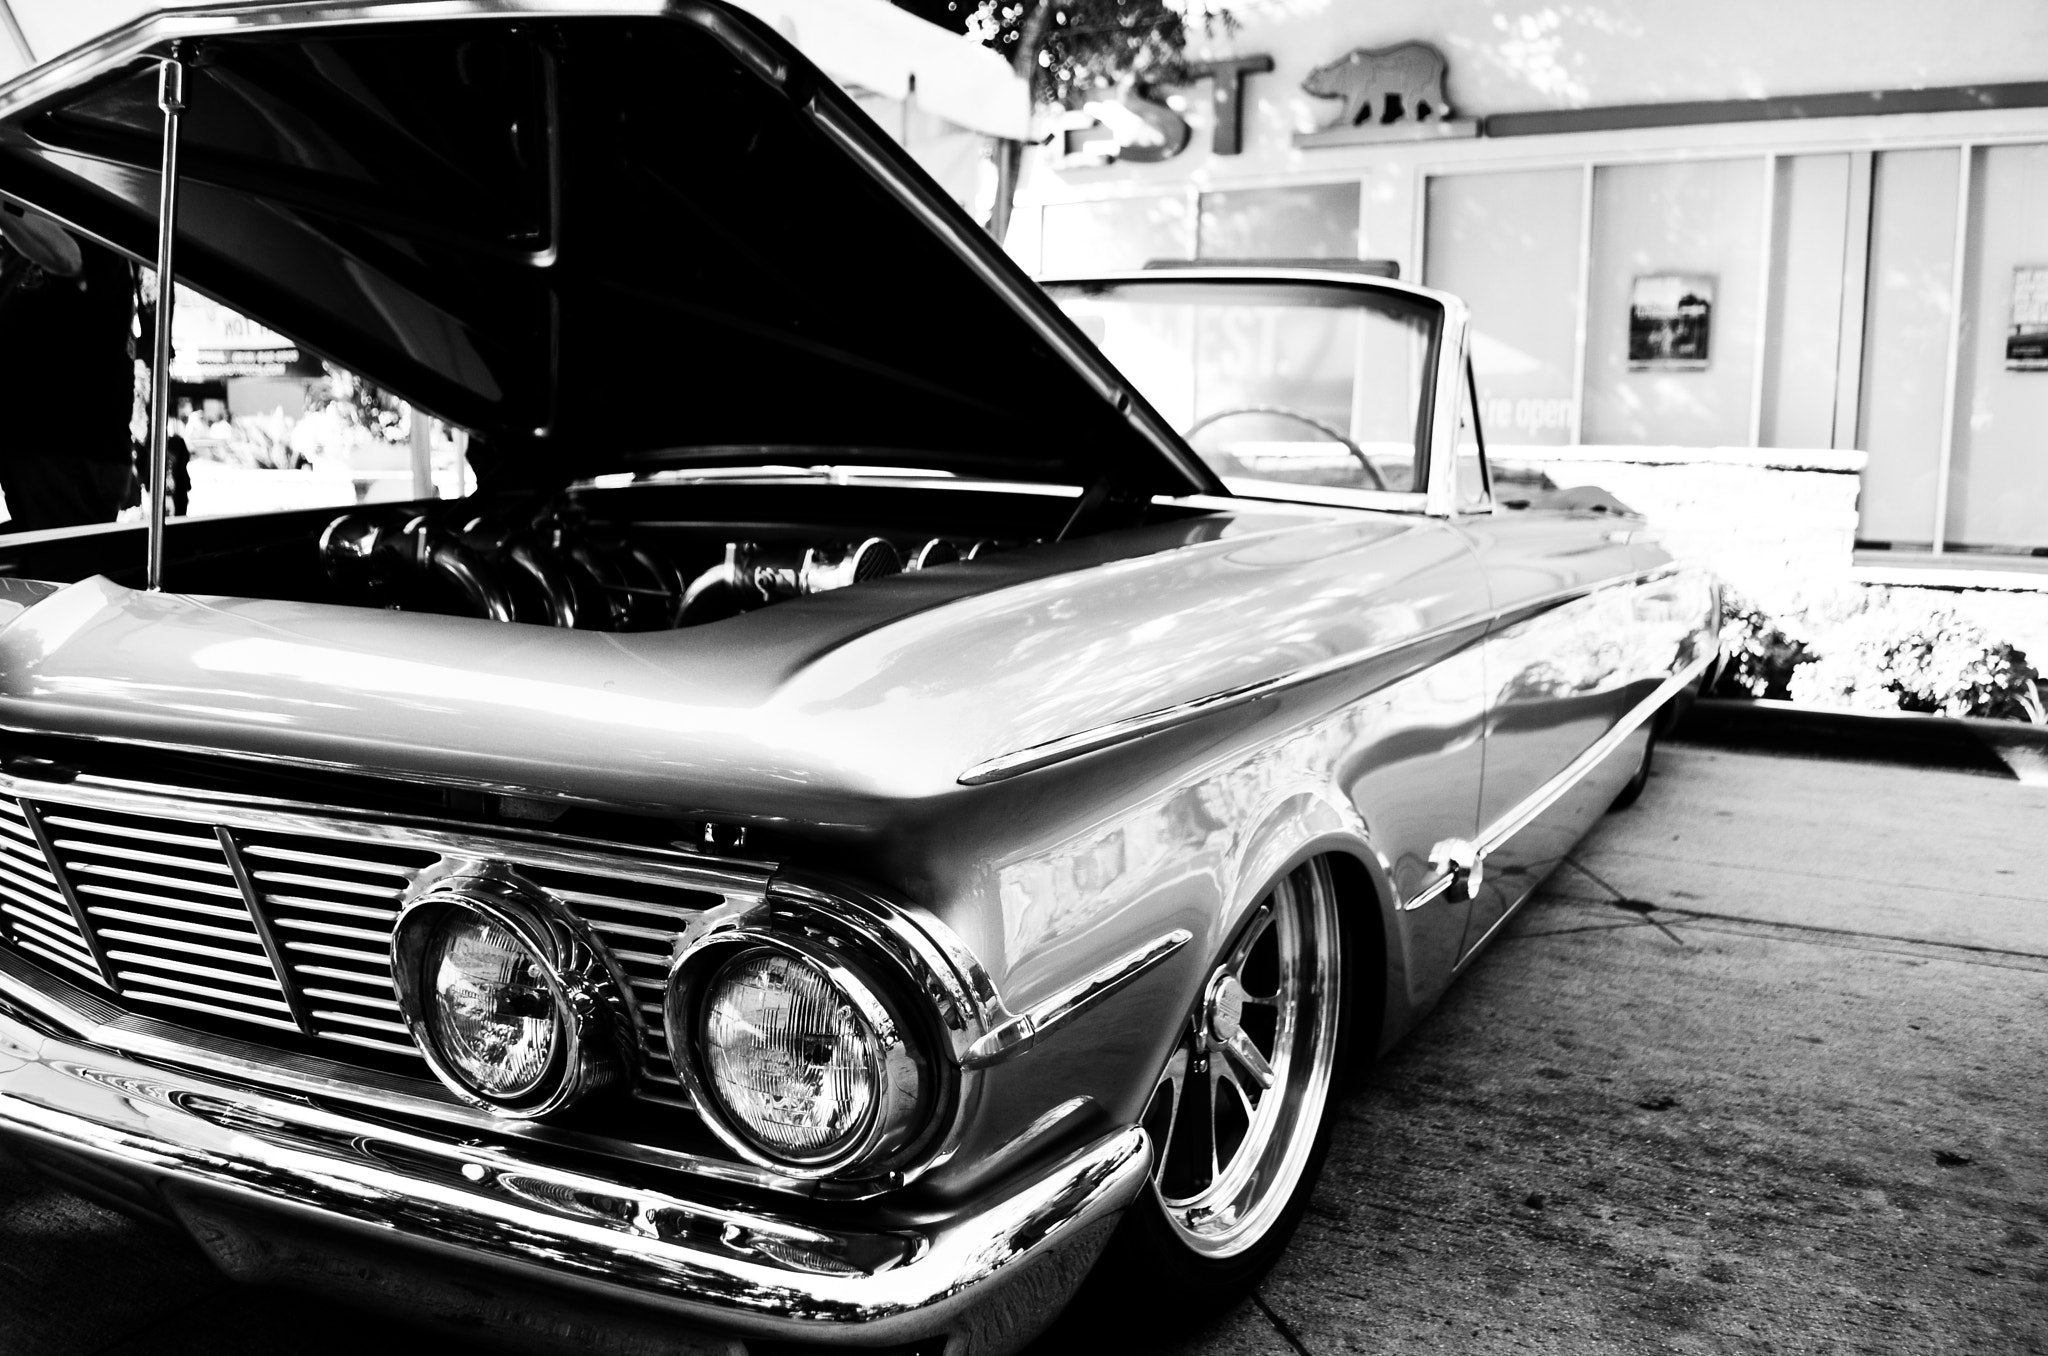 Photograph Lowrider by Jeon Dwayne on 500px